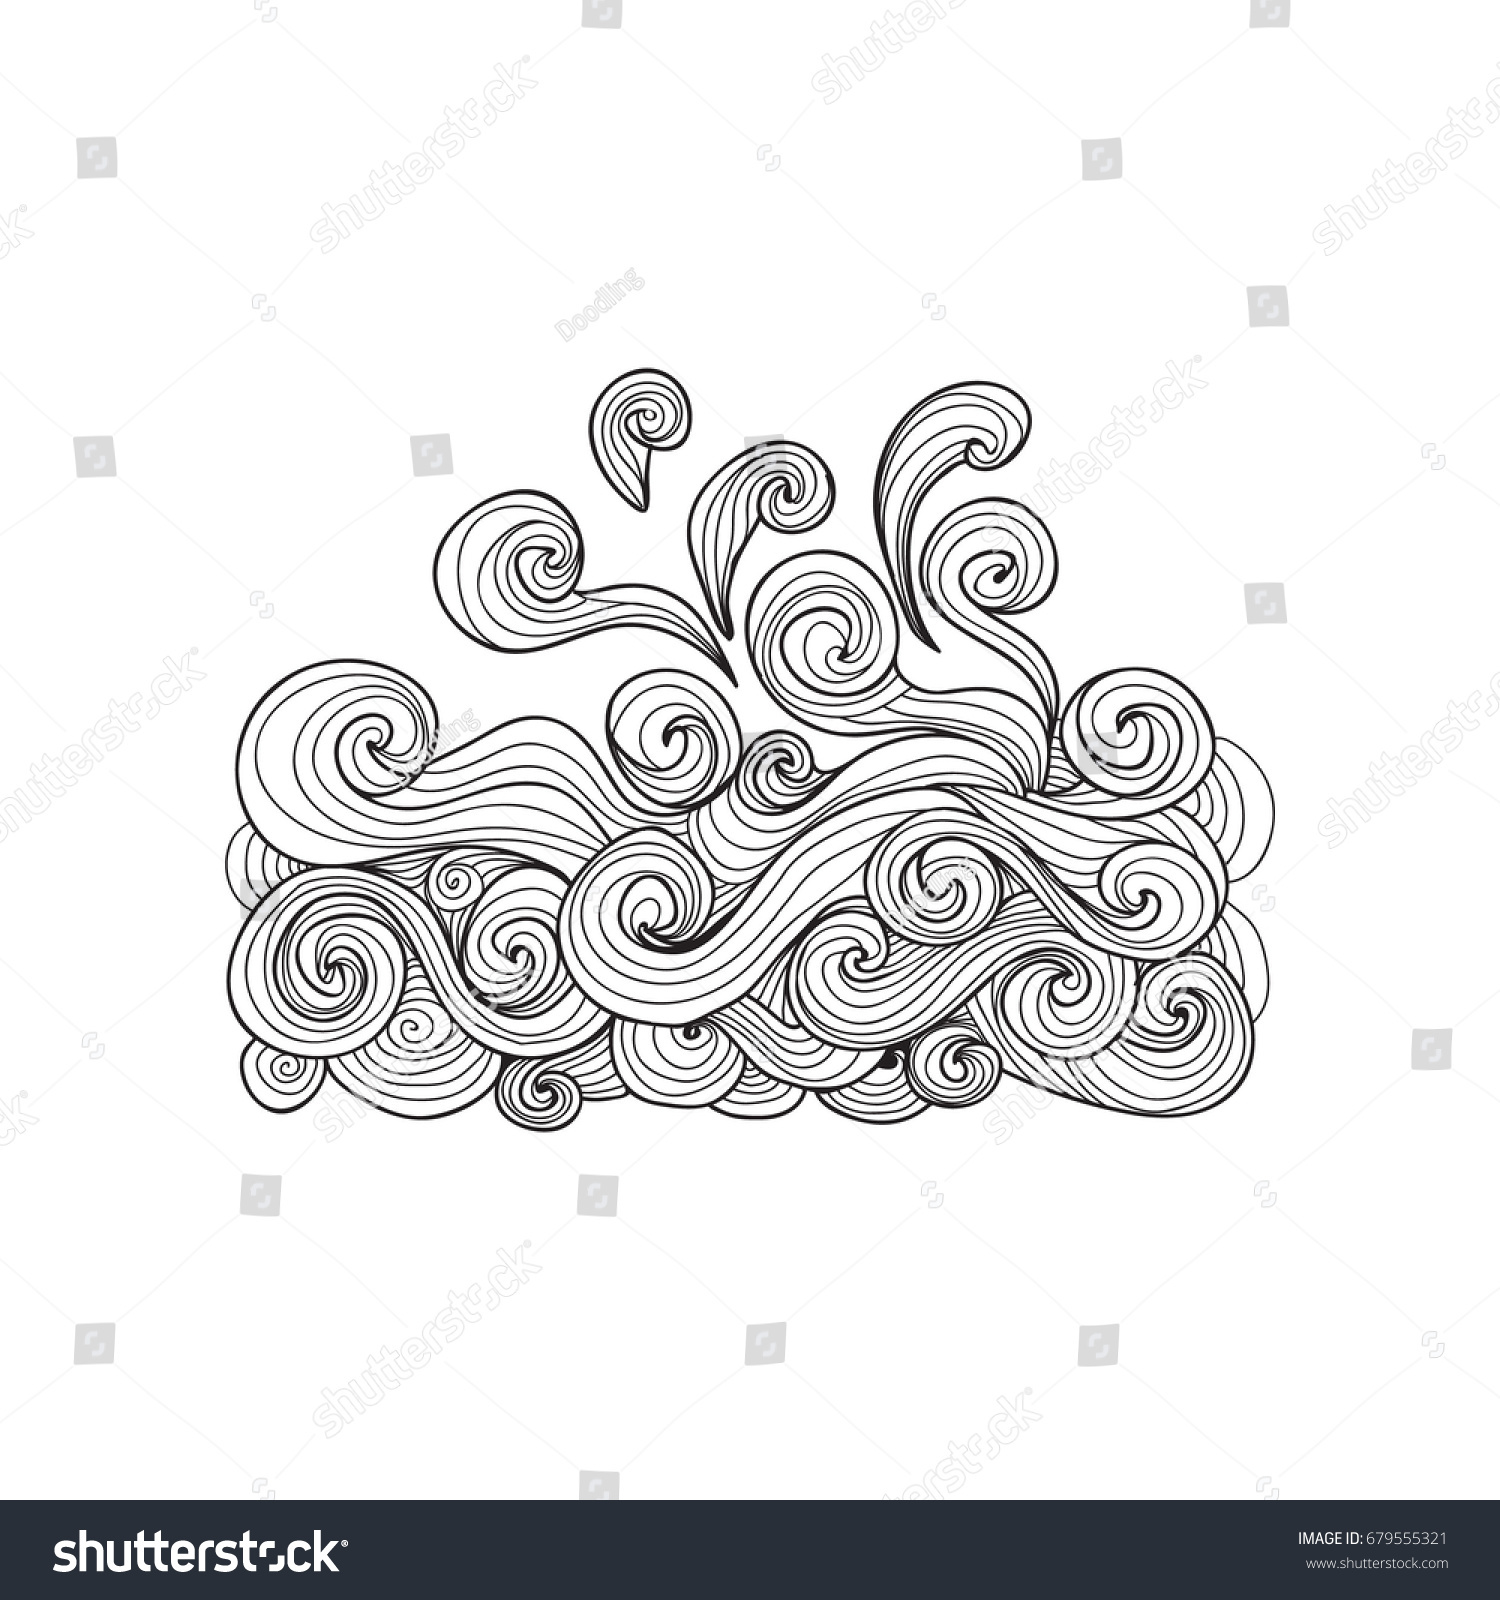 Anti stress colouring book asda - Sea Wave Coloring Book For Adults Vector Illustration Anti Stress Coloring For Adult Water